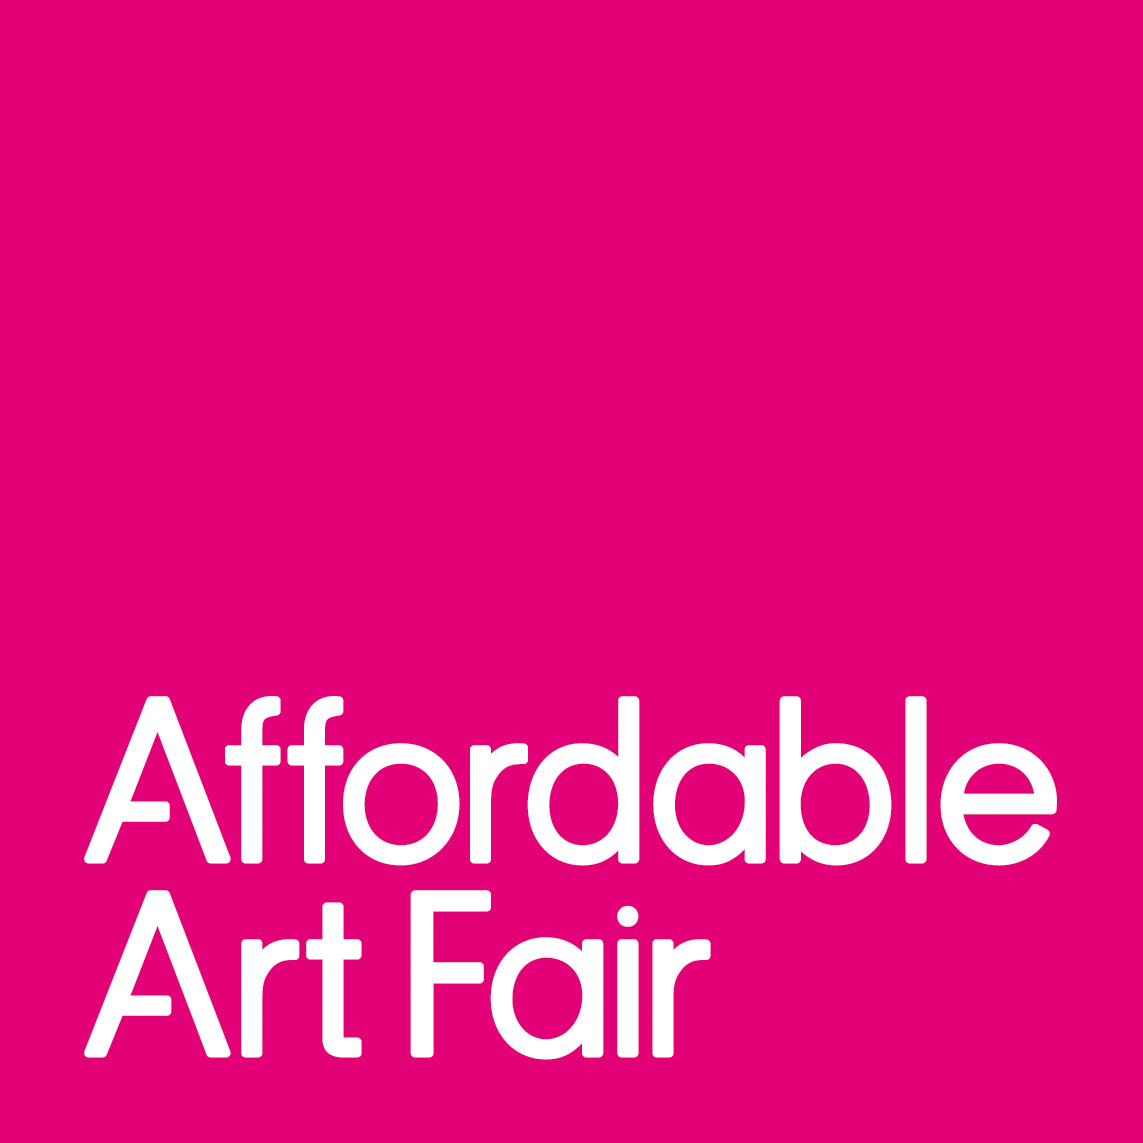 Affordable Art Fair Battersea opens this evening!